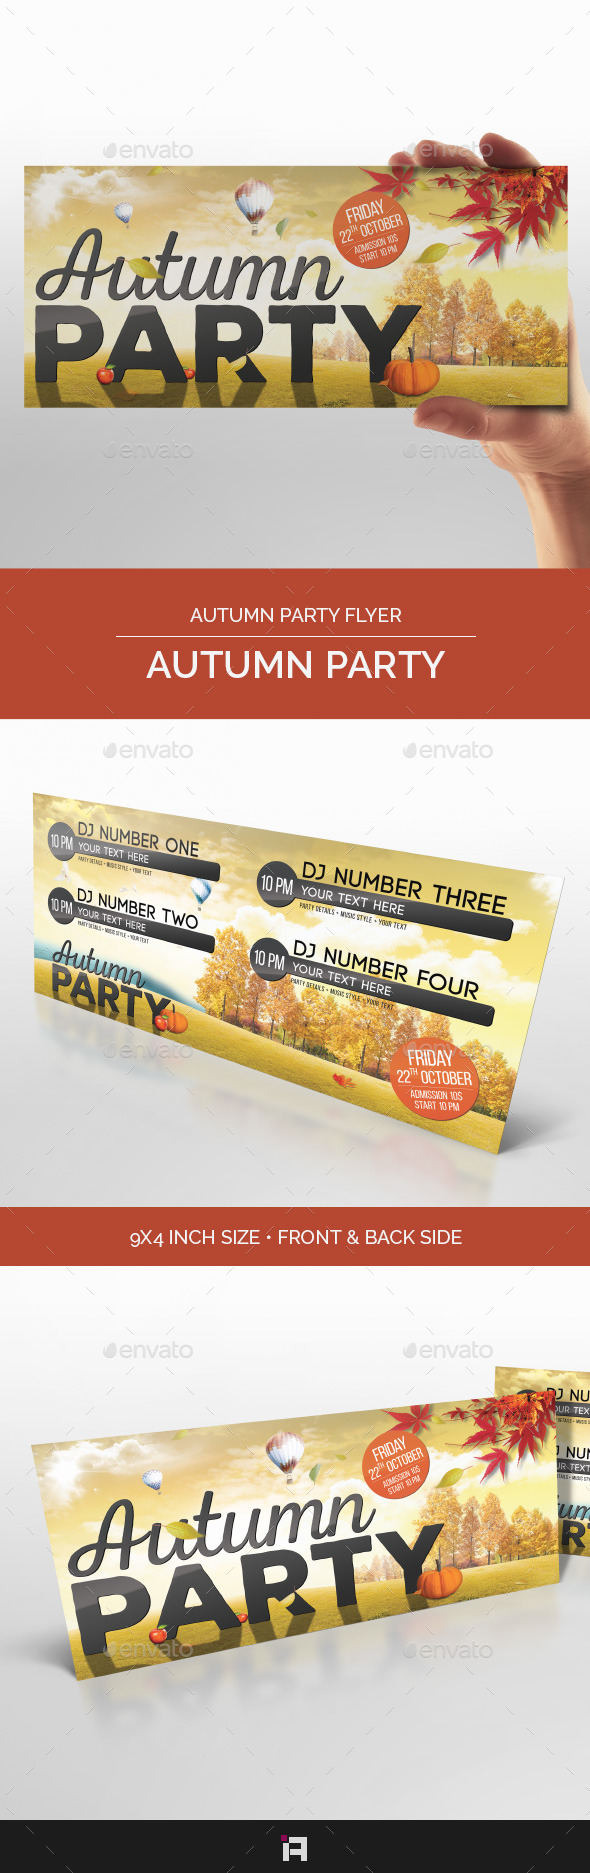 Autumn Party • Autumn Party Flyer - Clubs & Parties Events